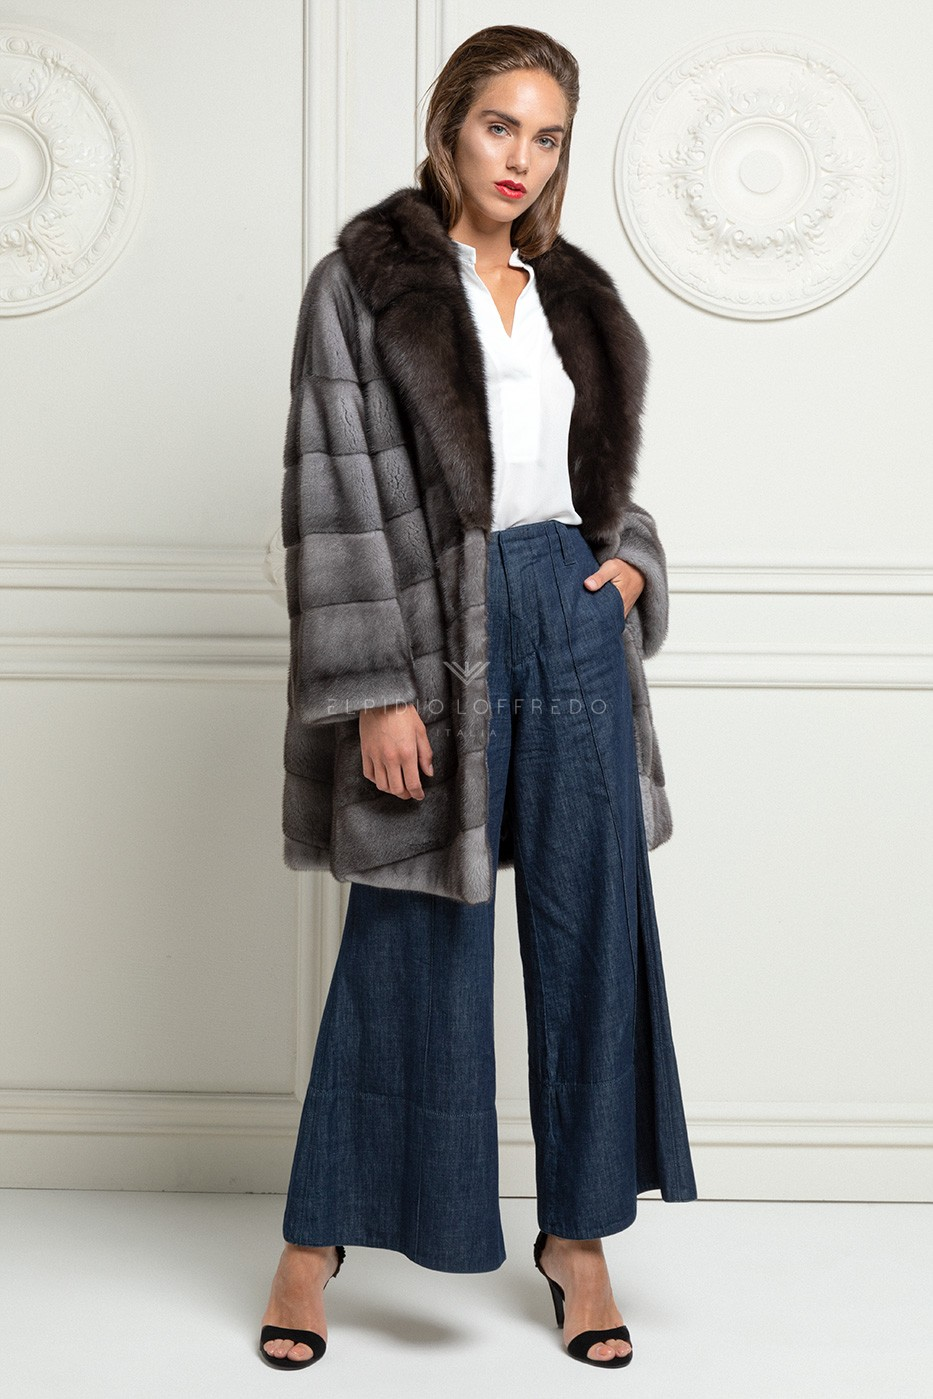 Blue Iris Mink with Sable